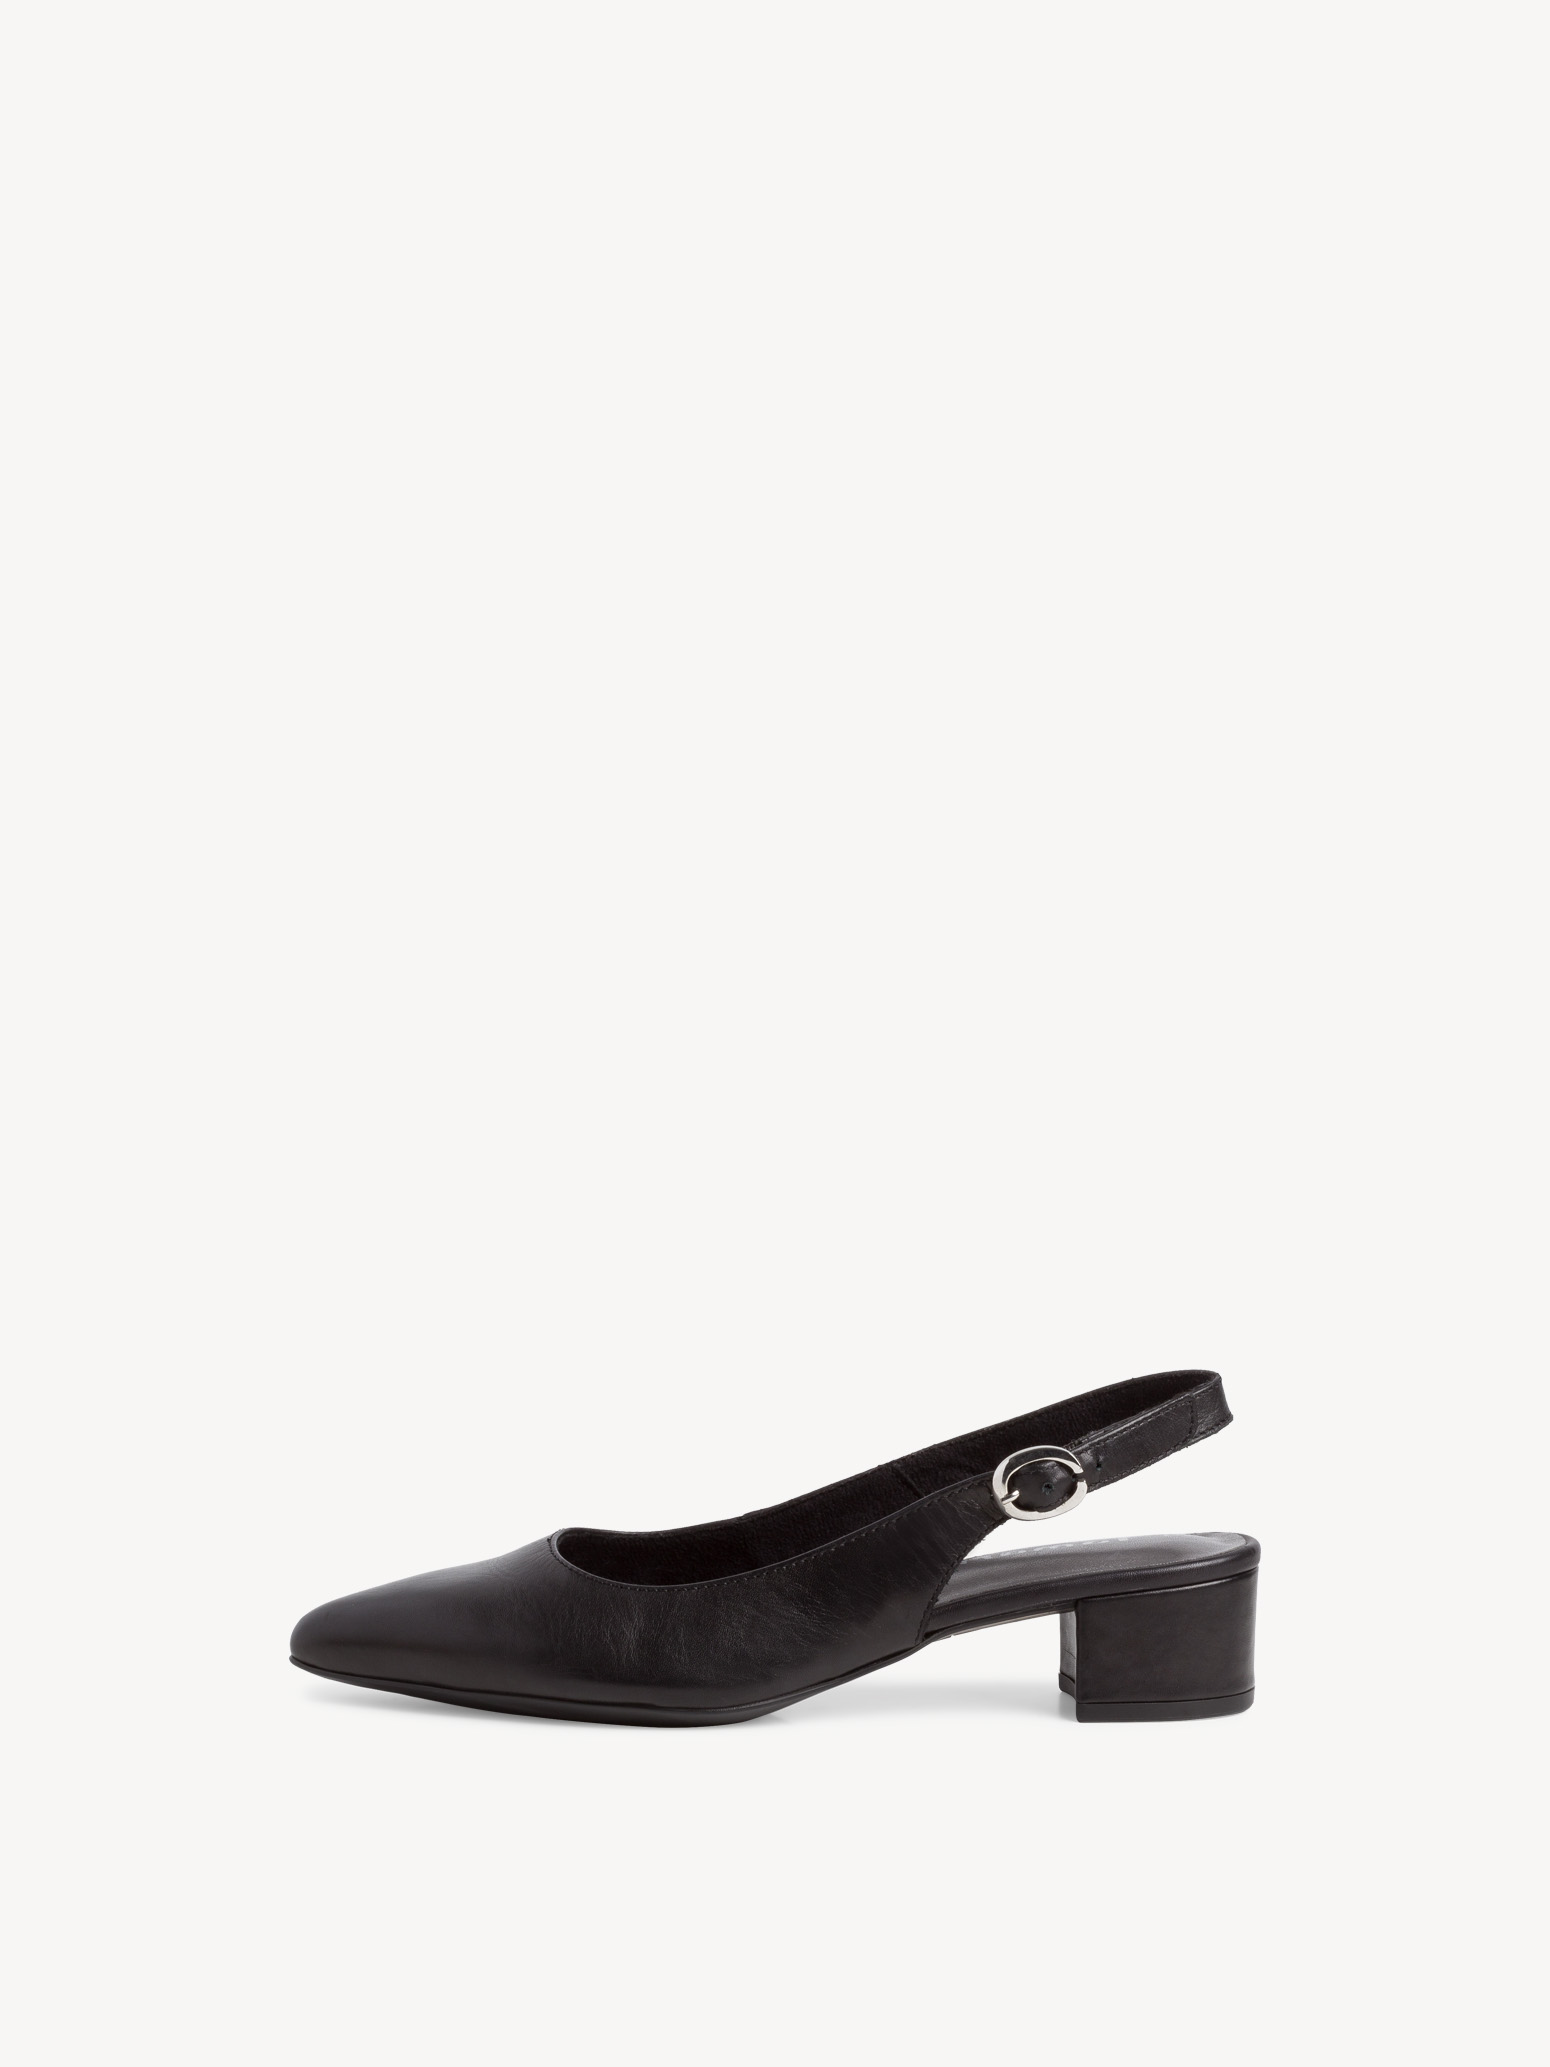 Leather sling pumps